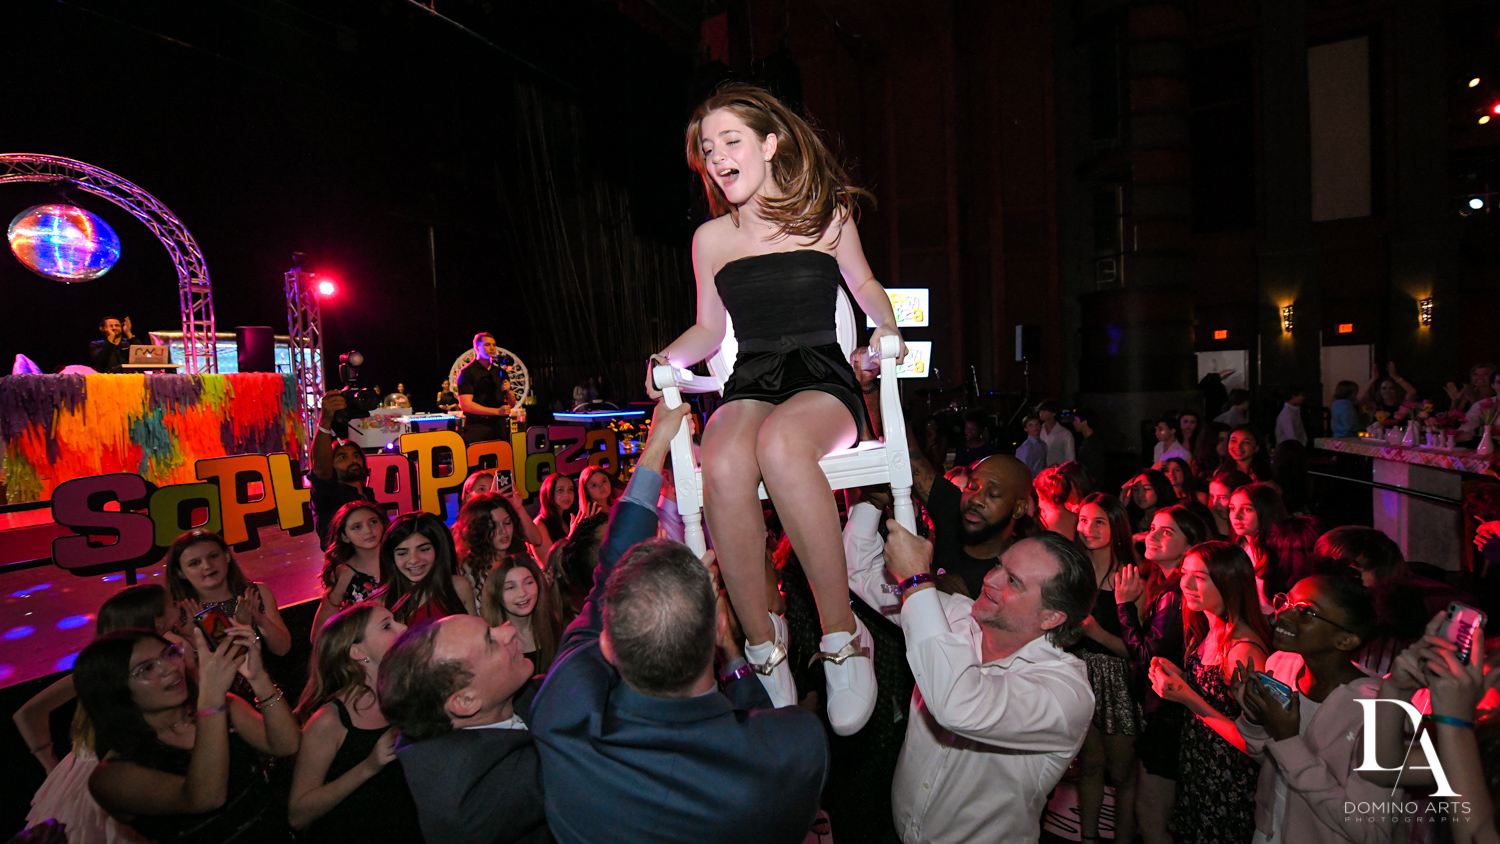 hora at Music Festival Bat Mitzvah at The Fillmore Miami Beach by Domino Arts Photography